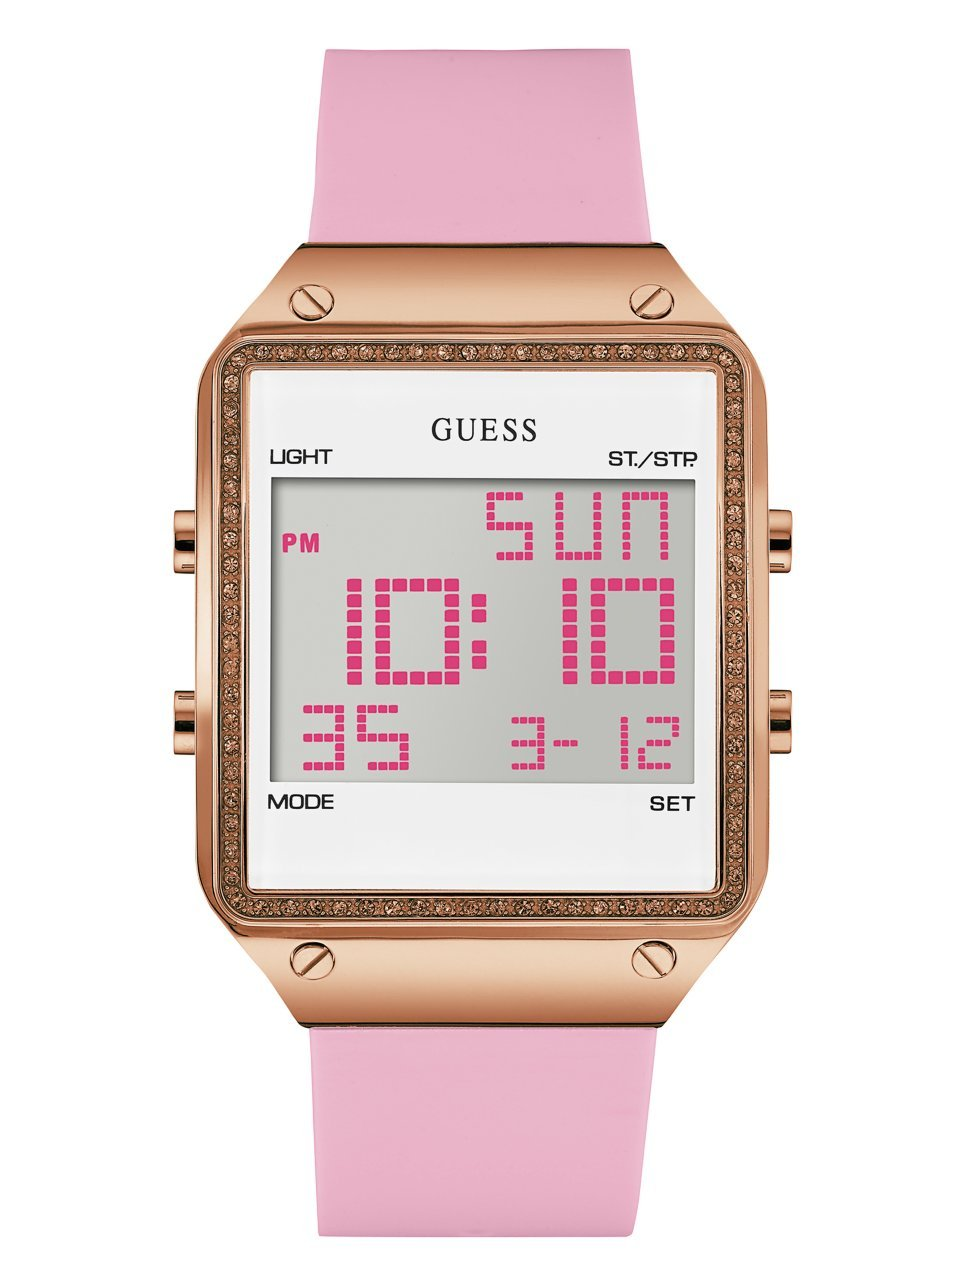 GUESS Women's U0700L2 Digital Pink Silicone Watch with Alarm, Dual Time Zone and Chronograph Functions by GUESS